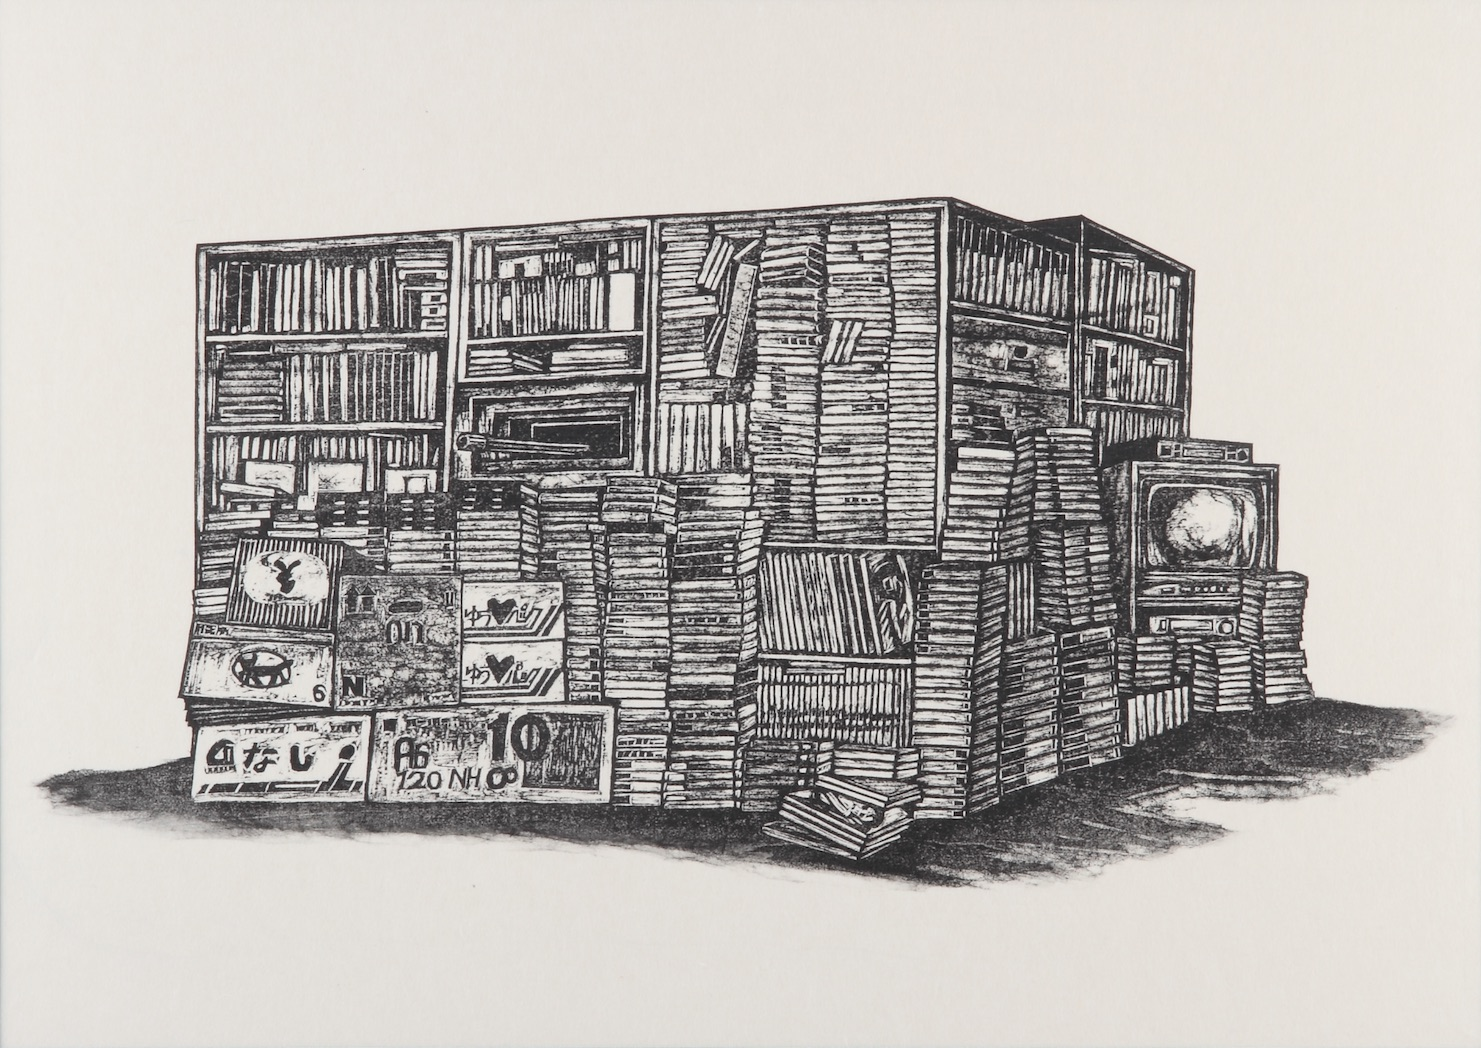 Sachiko Kazama